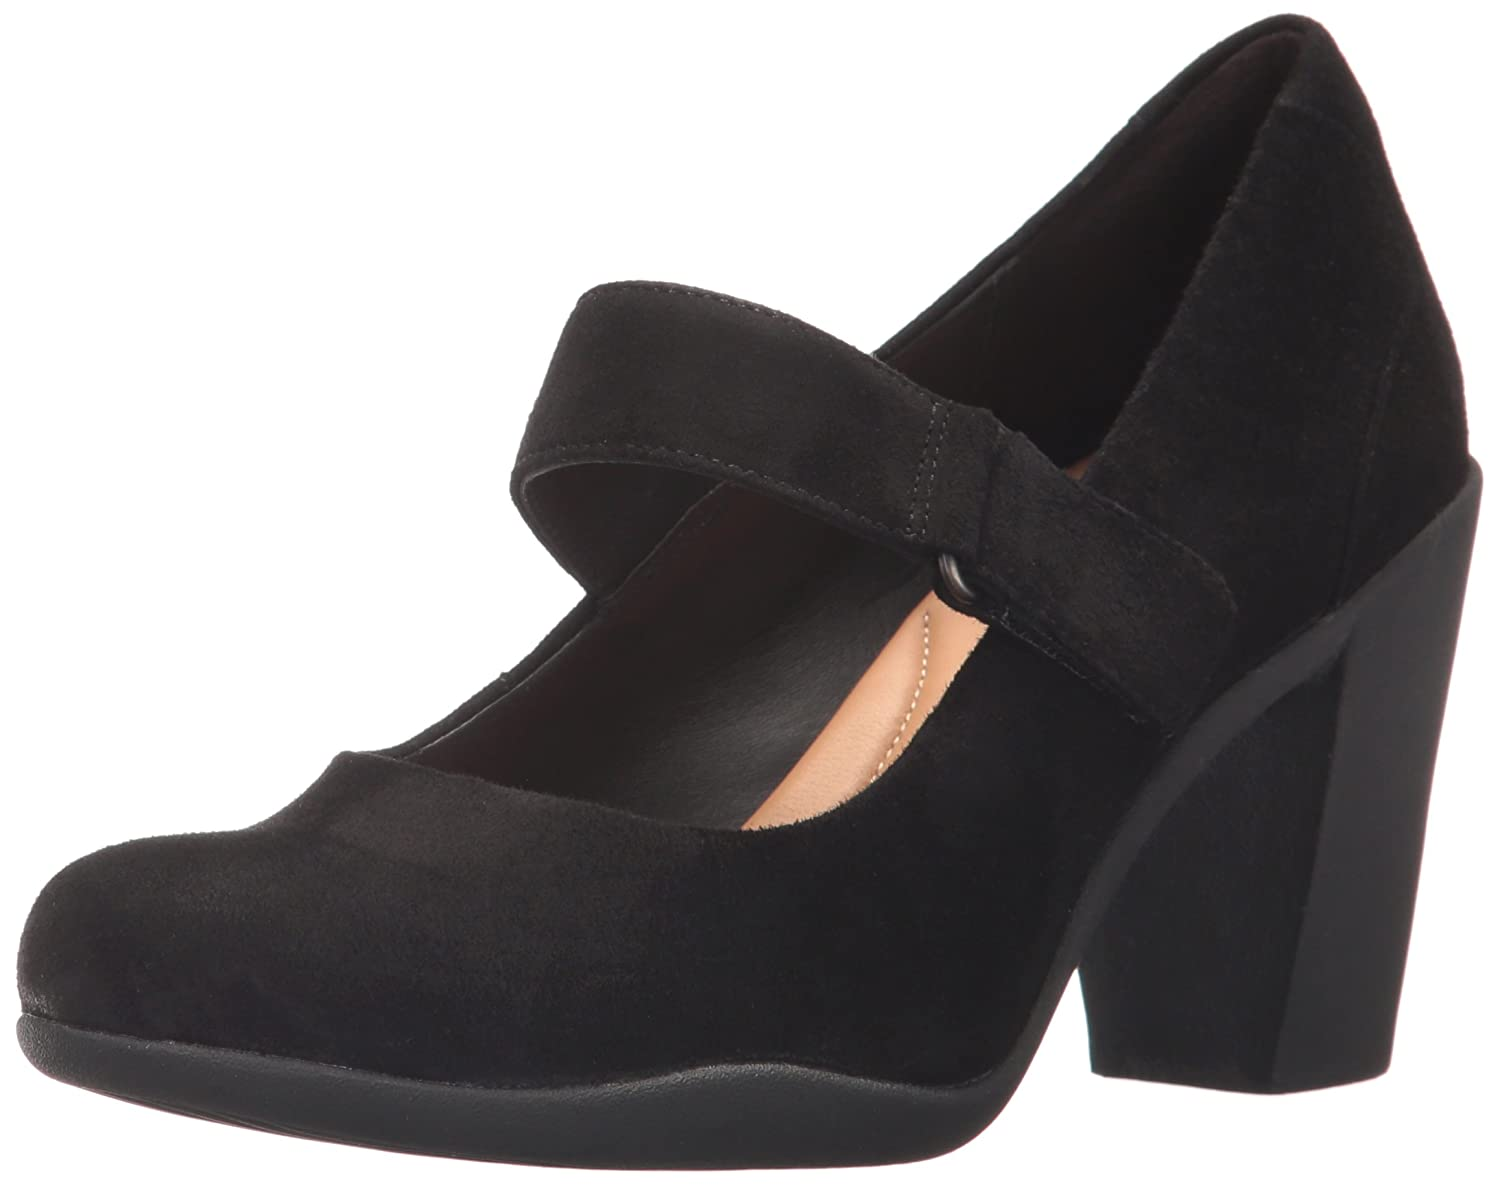 CLARKS Women's Adya Clara Dress Pump B01NCO2C0P 6 B(M) US|Black Suede